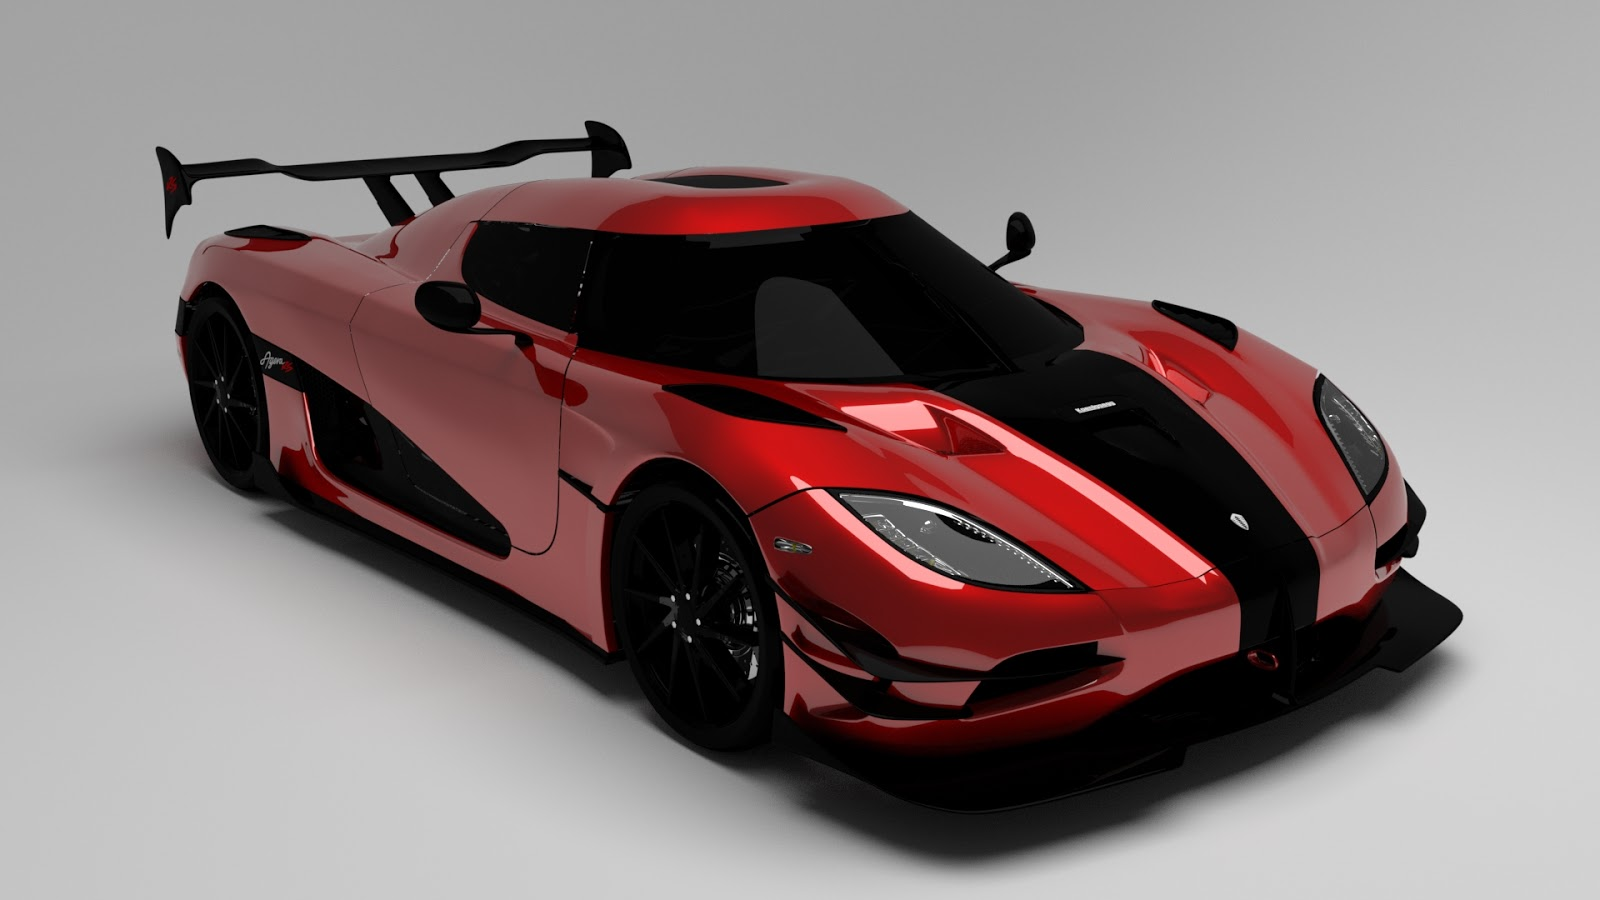 Free 3D Koenigsegg Agera RS .blend file